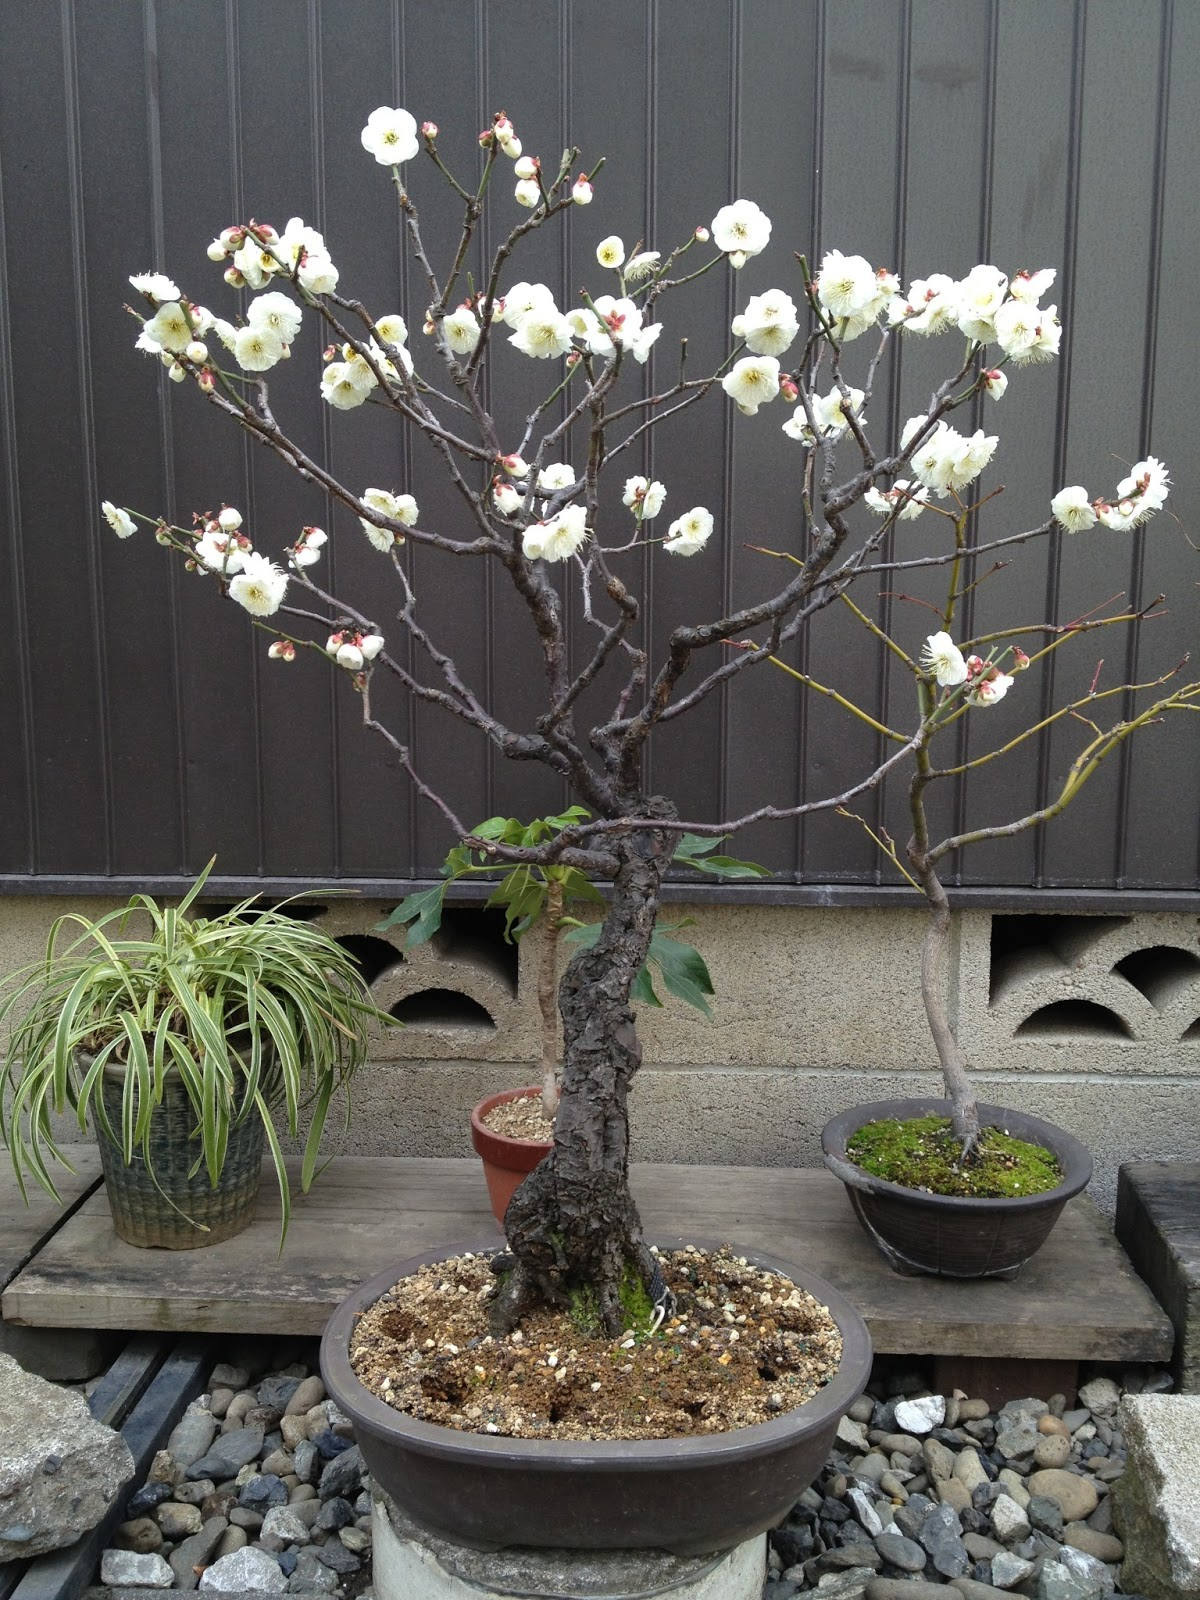 Marketing Japan First Plum Blossoms In Tokyo Feb 14 2013